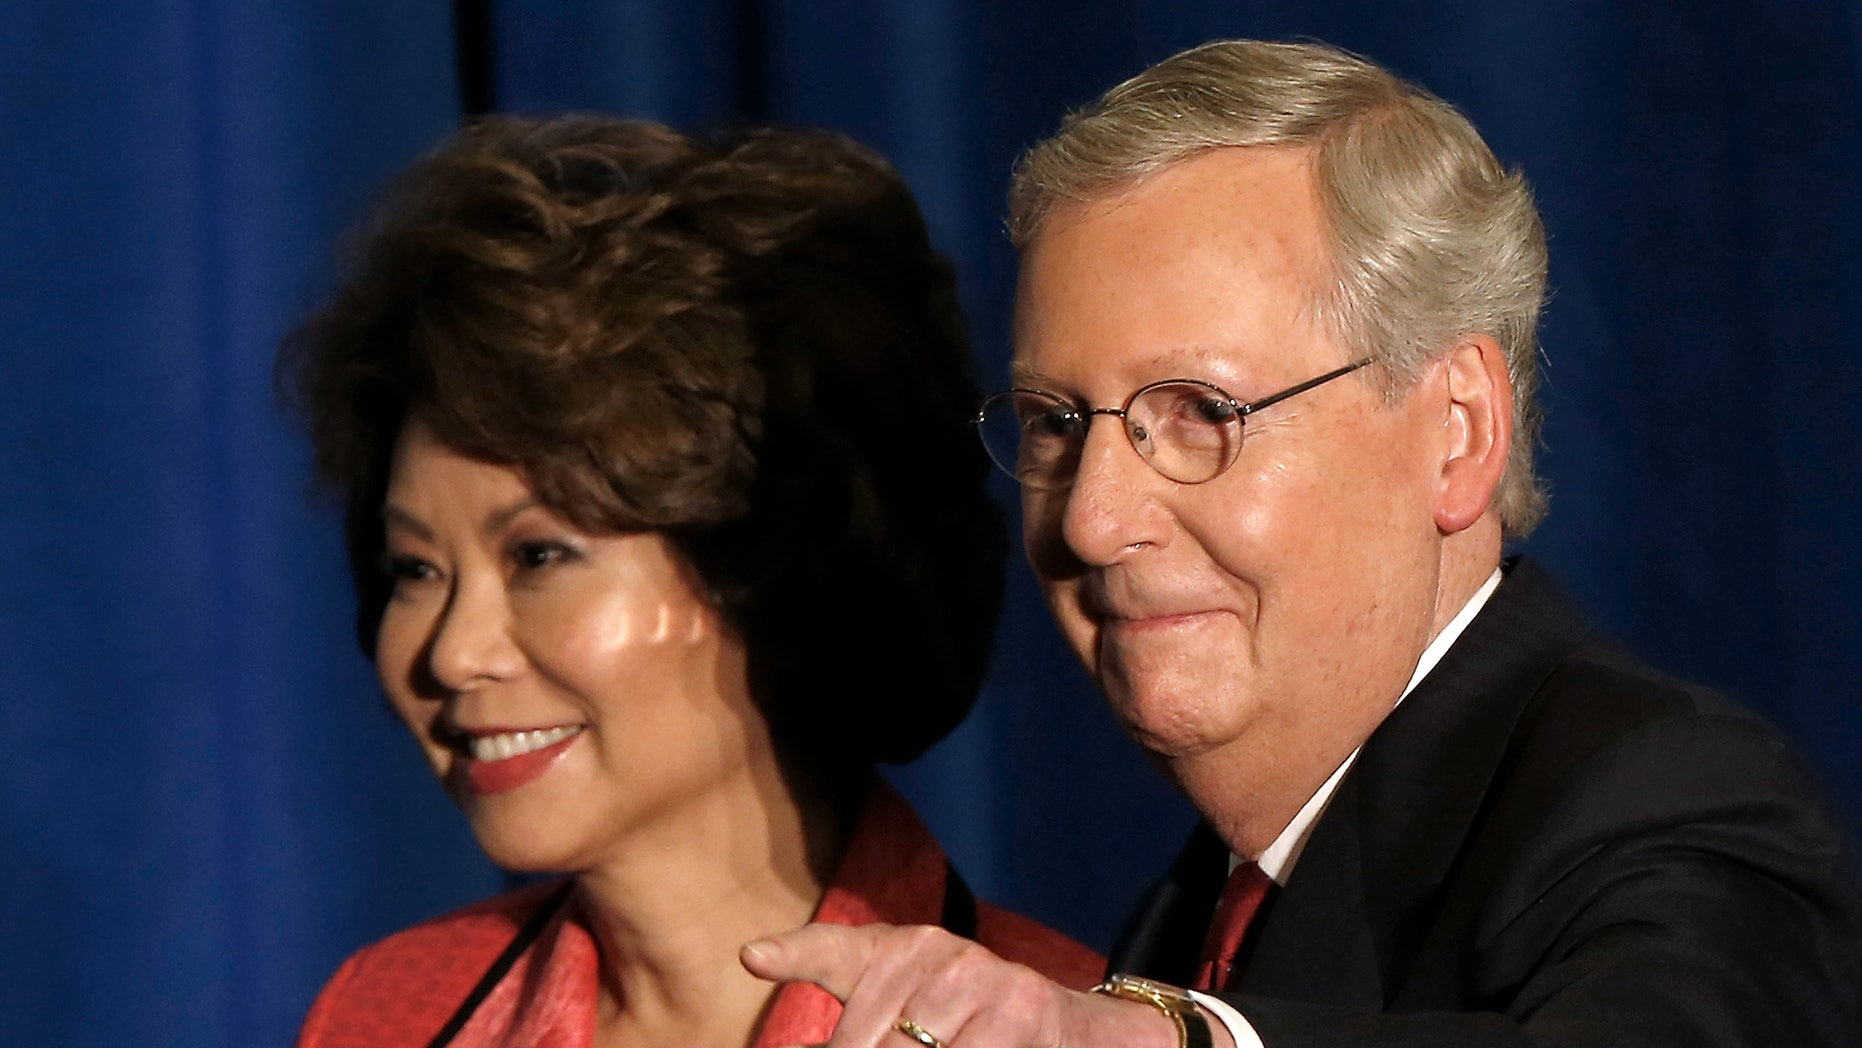 U.S. Senate Republican Leader Sen. Mitch McConnell and his wife Elaine Chao on May 20, 2014 in Louisville, Kentucky.